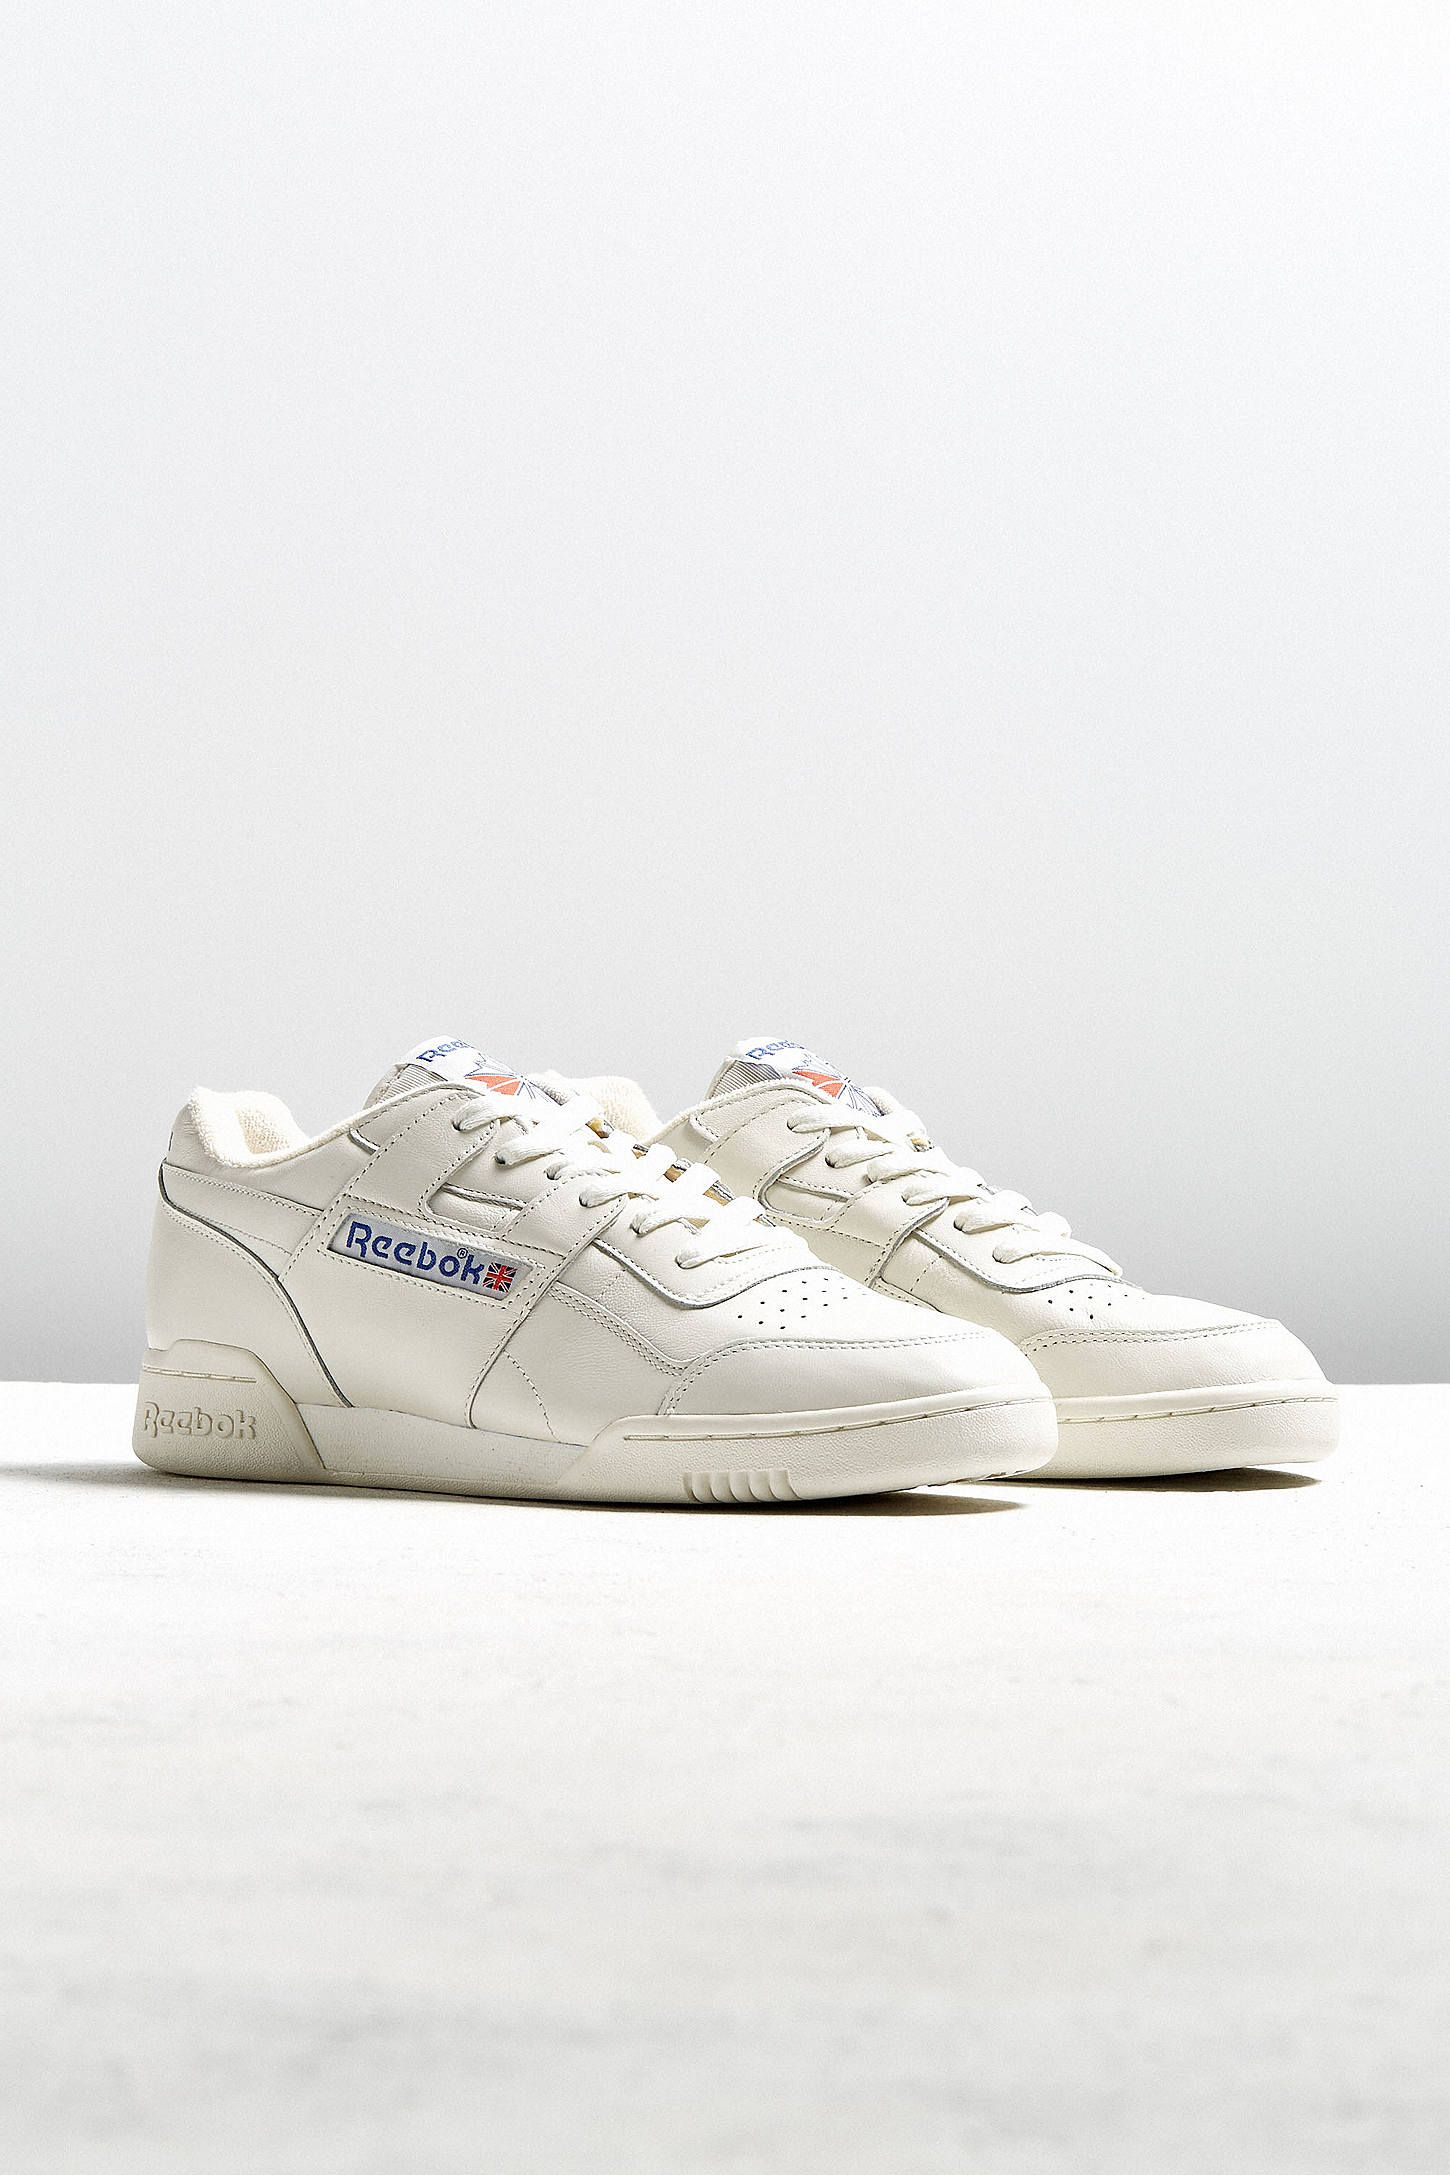 f0ec2931552 Shop Reebok Workout Plus Vintage Sneaker at Urban Outfitters today. We  carry all the latest styles